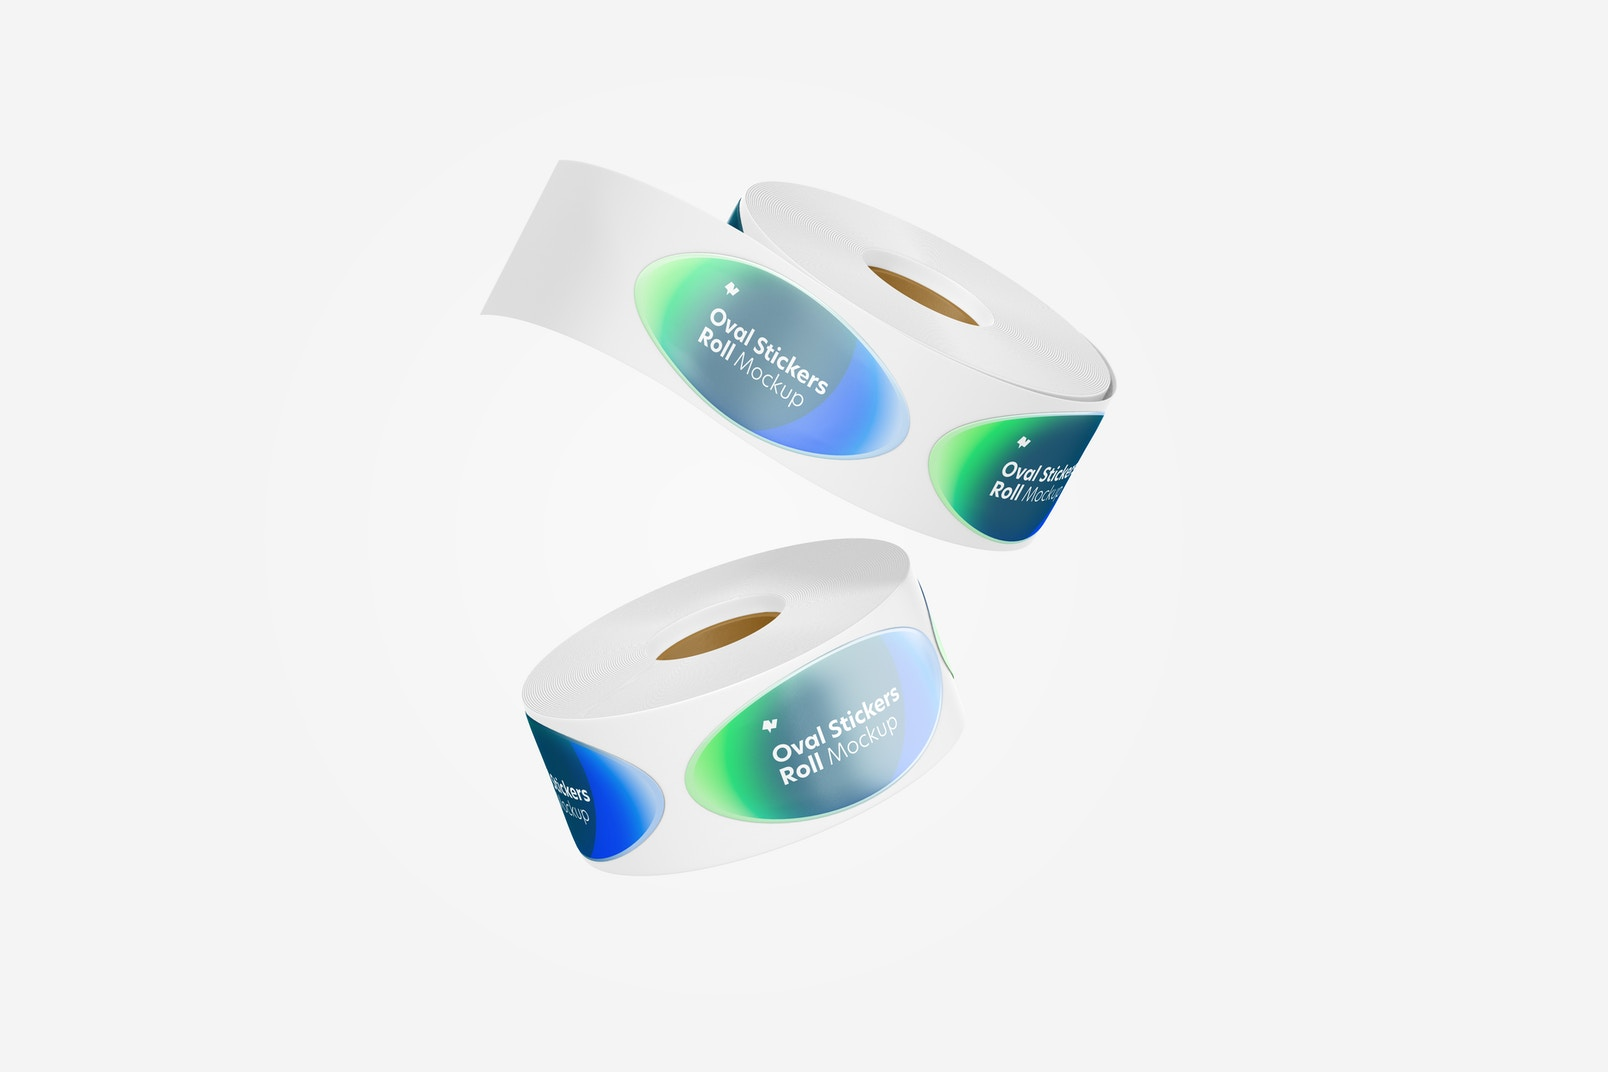 Oval Stickers Rolls Mockup, Floating